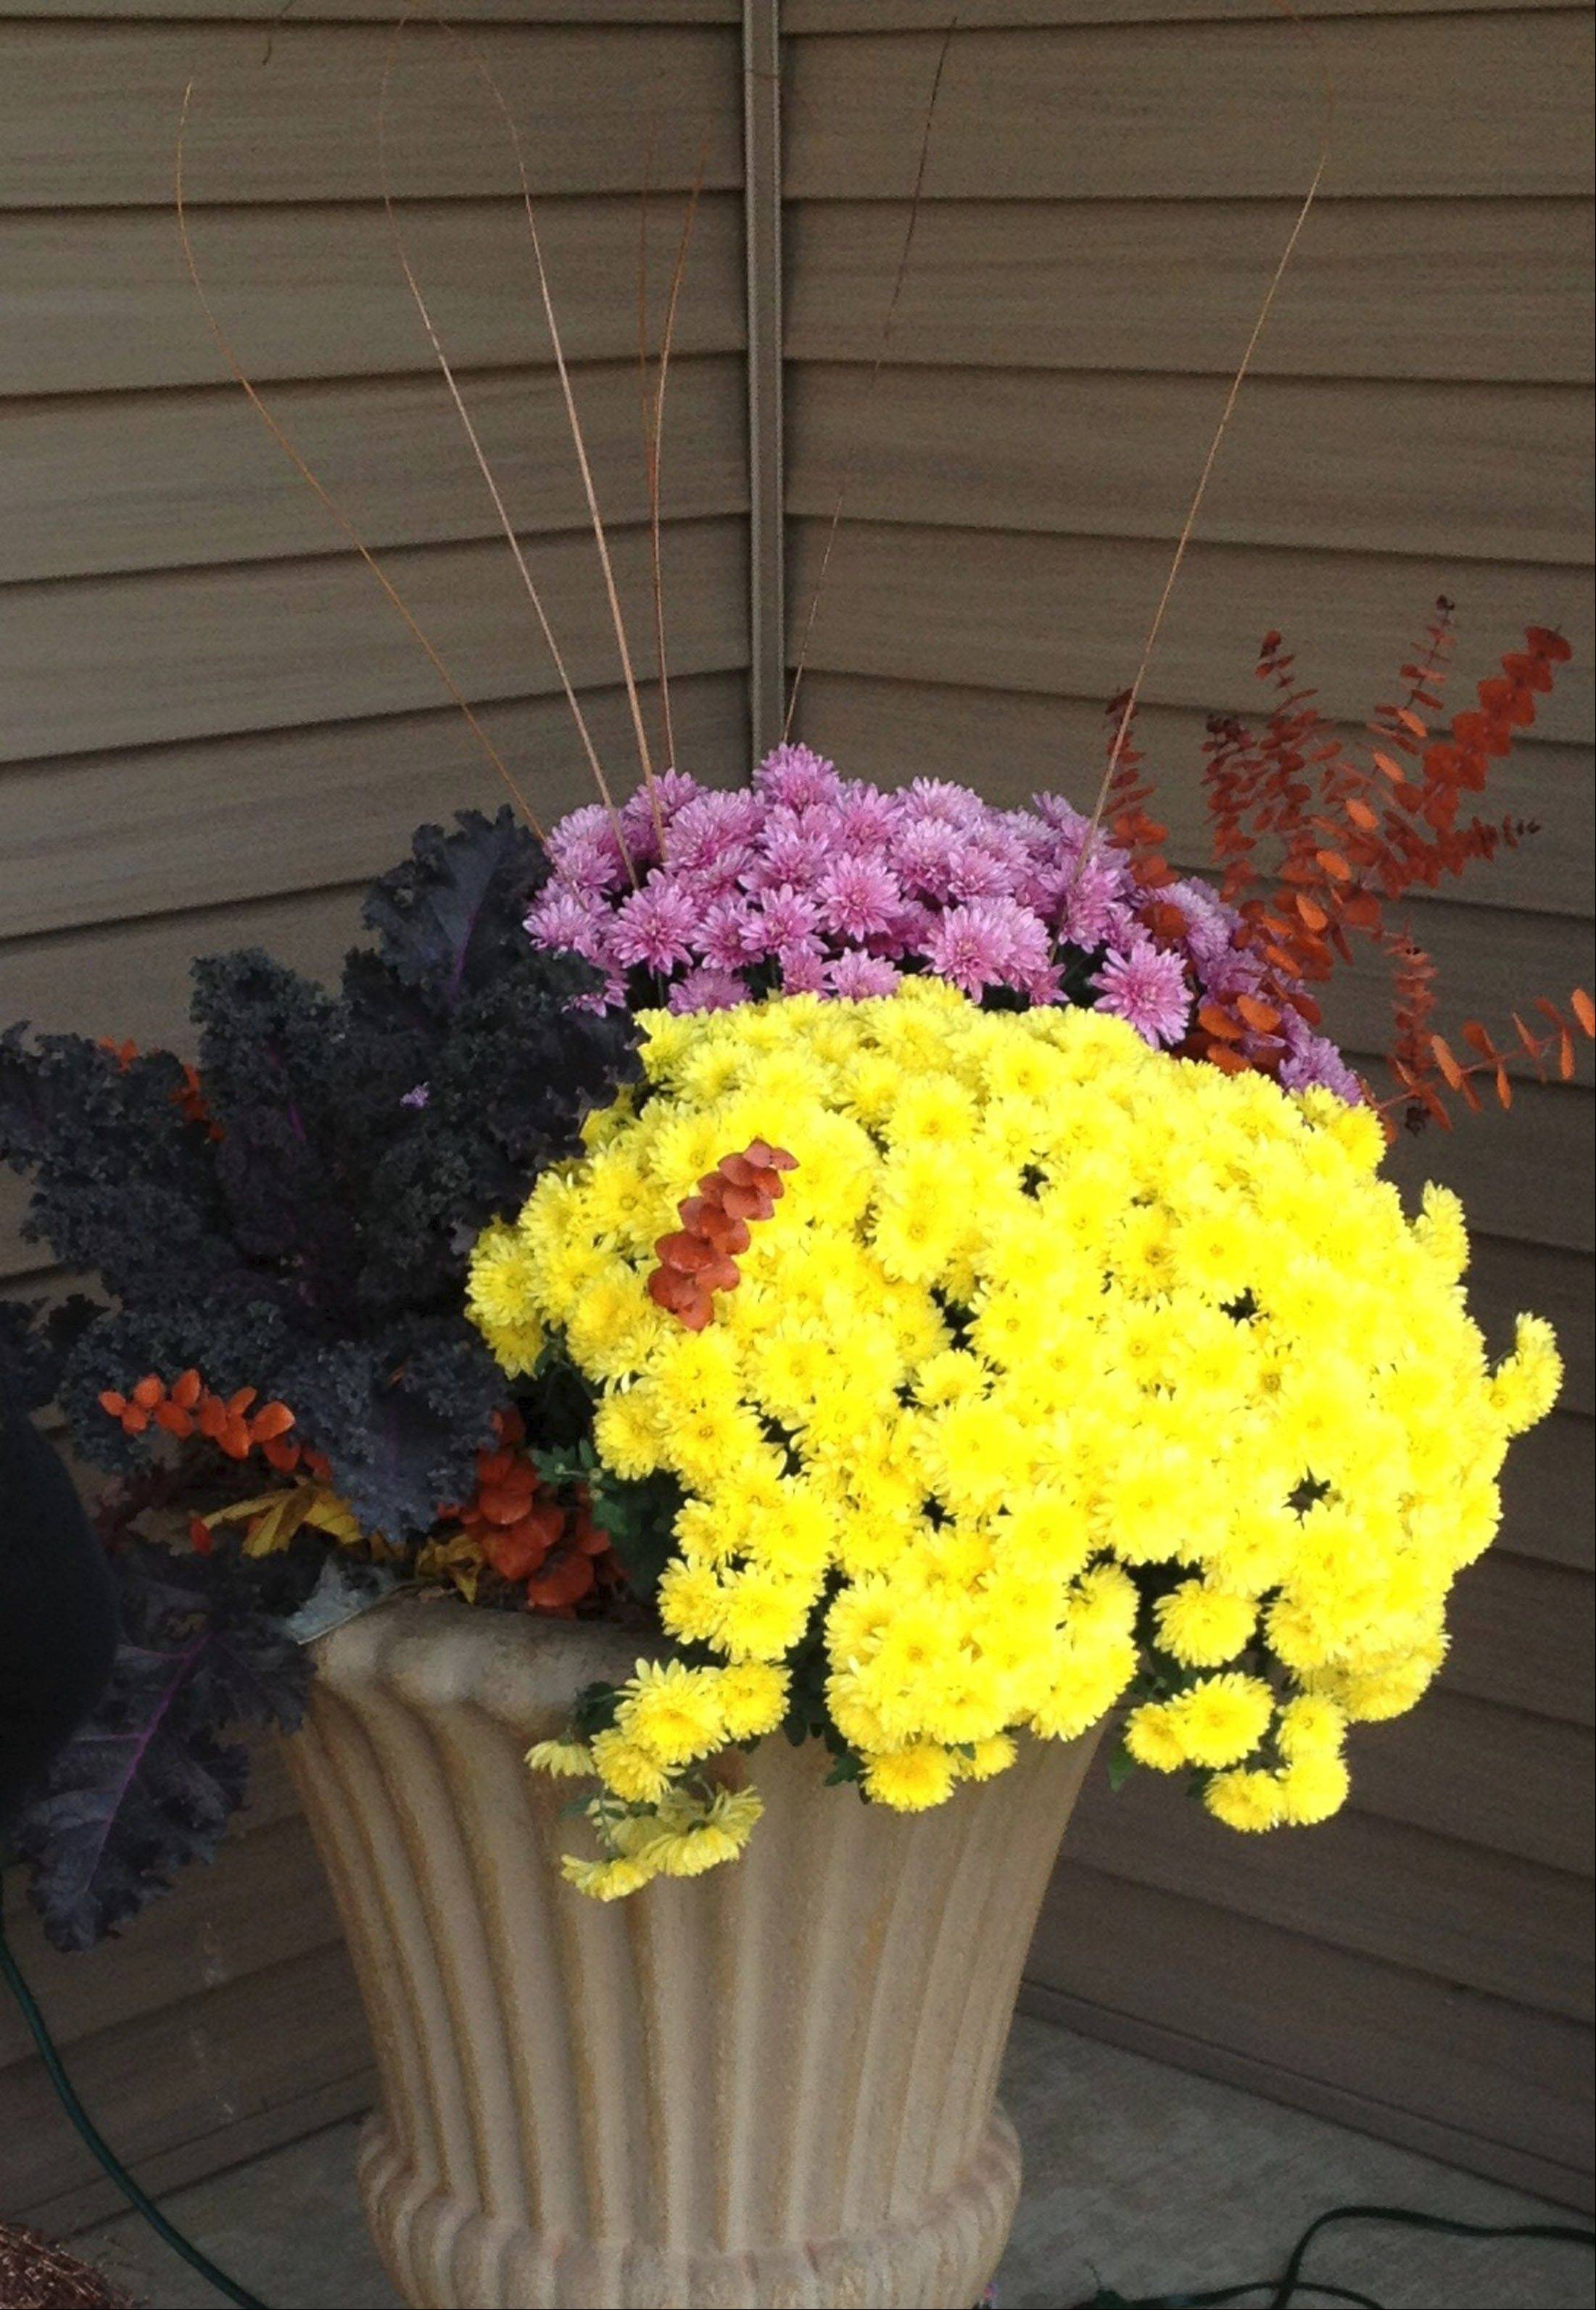 Lurvey Landscape Supply and Garden Center recommends adding decorative containers, which are available in many shapes, materials and colors.